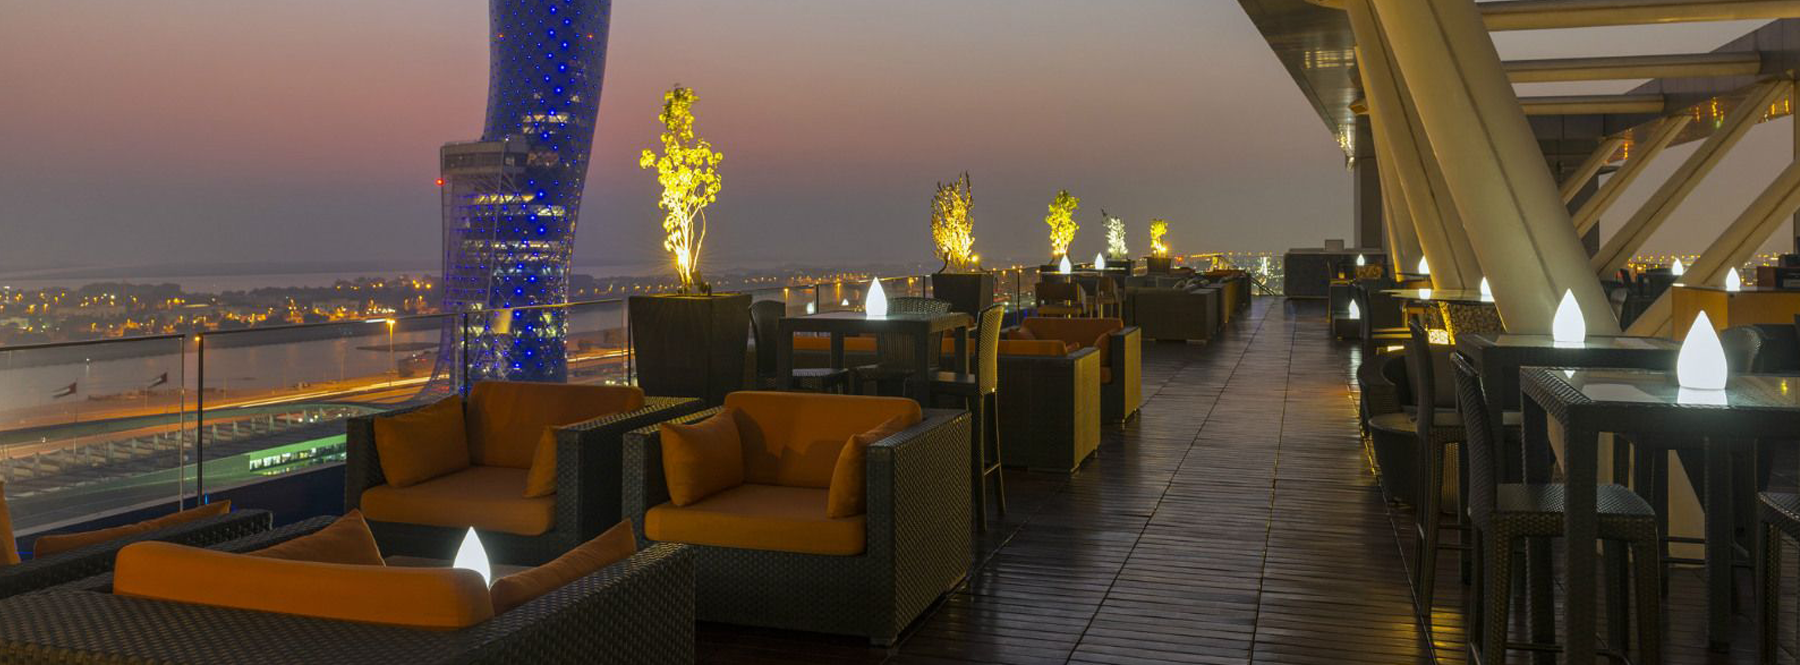 -Relax at 12 - Terrace exterior